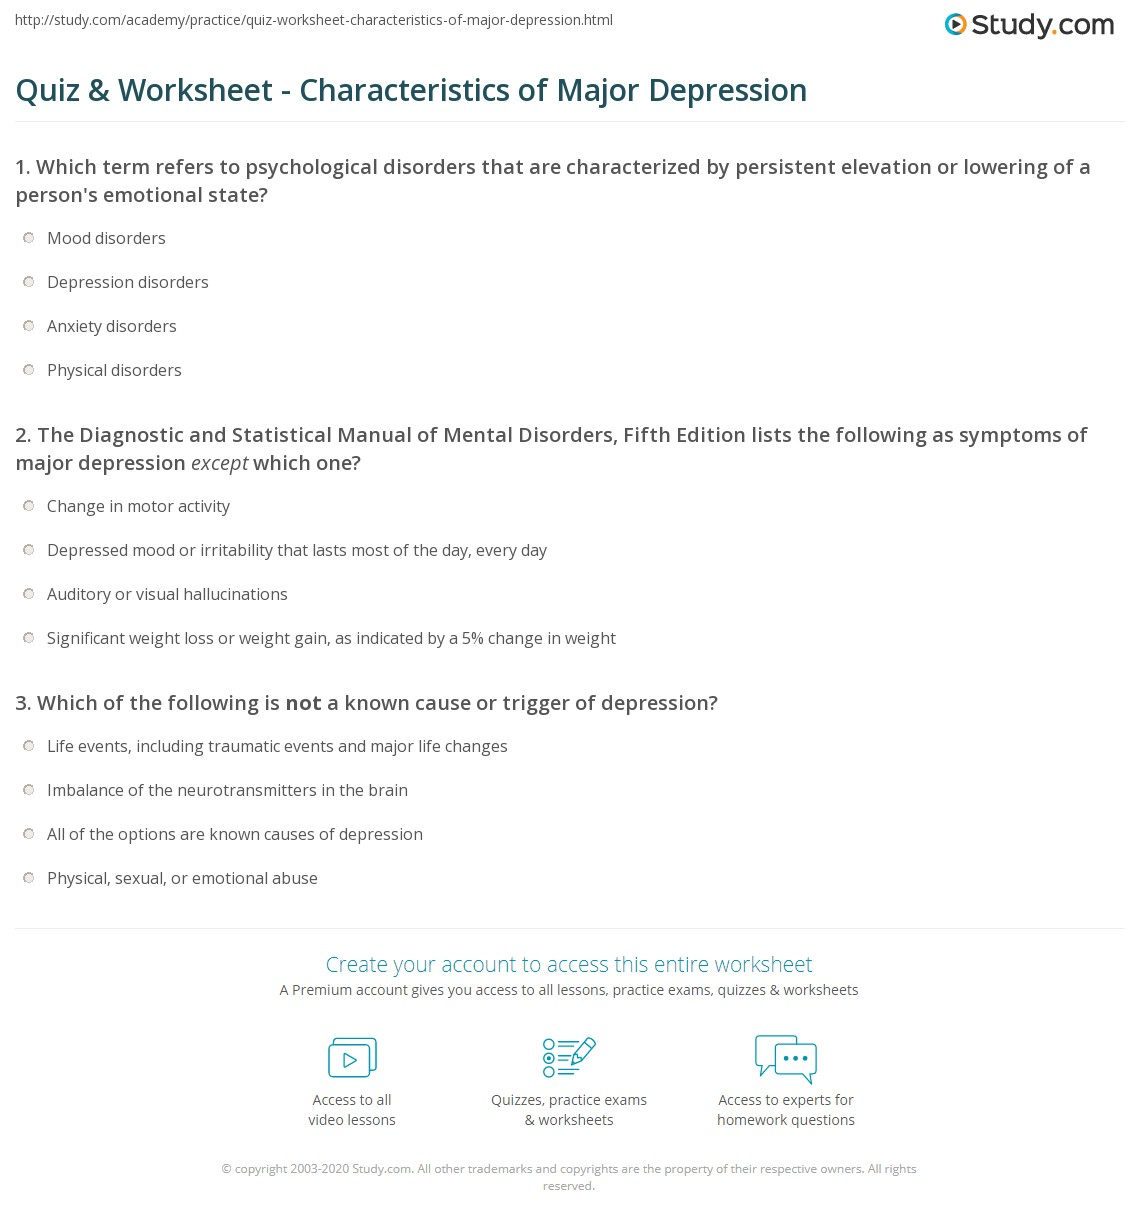 quiz & worksheet - characteristics of major depression | study